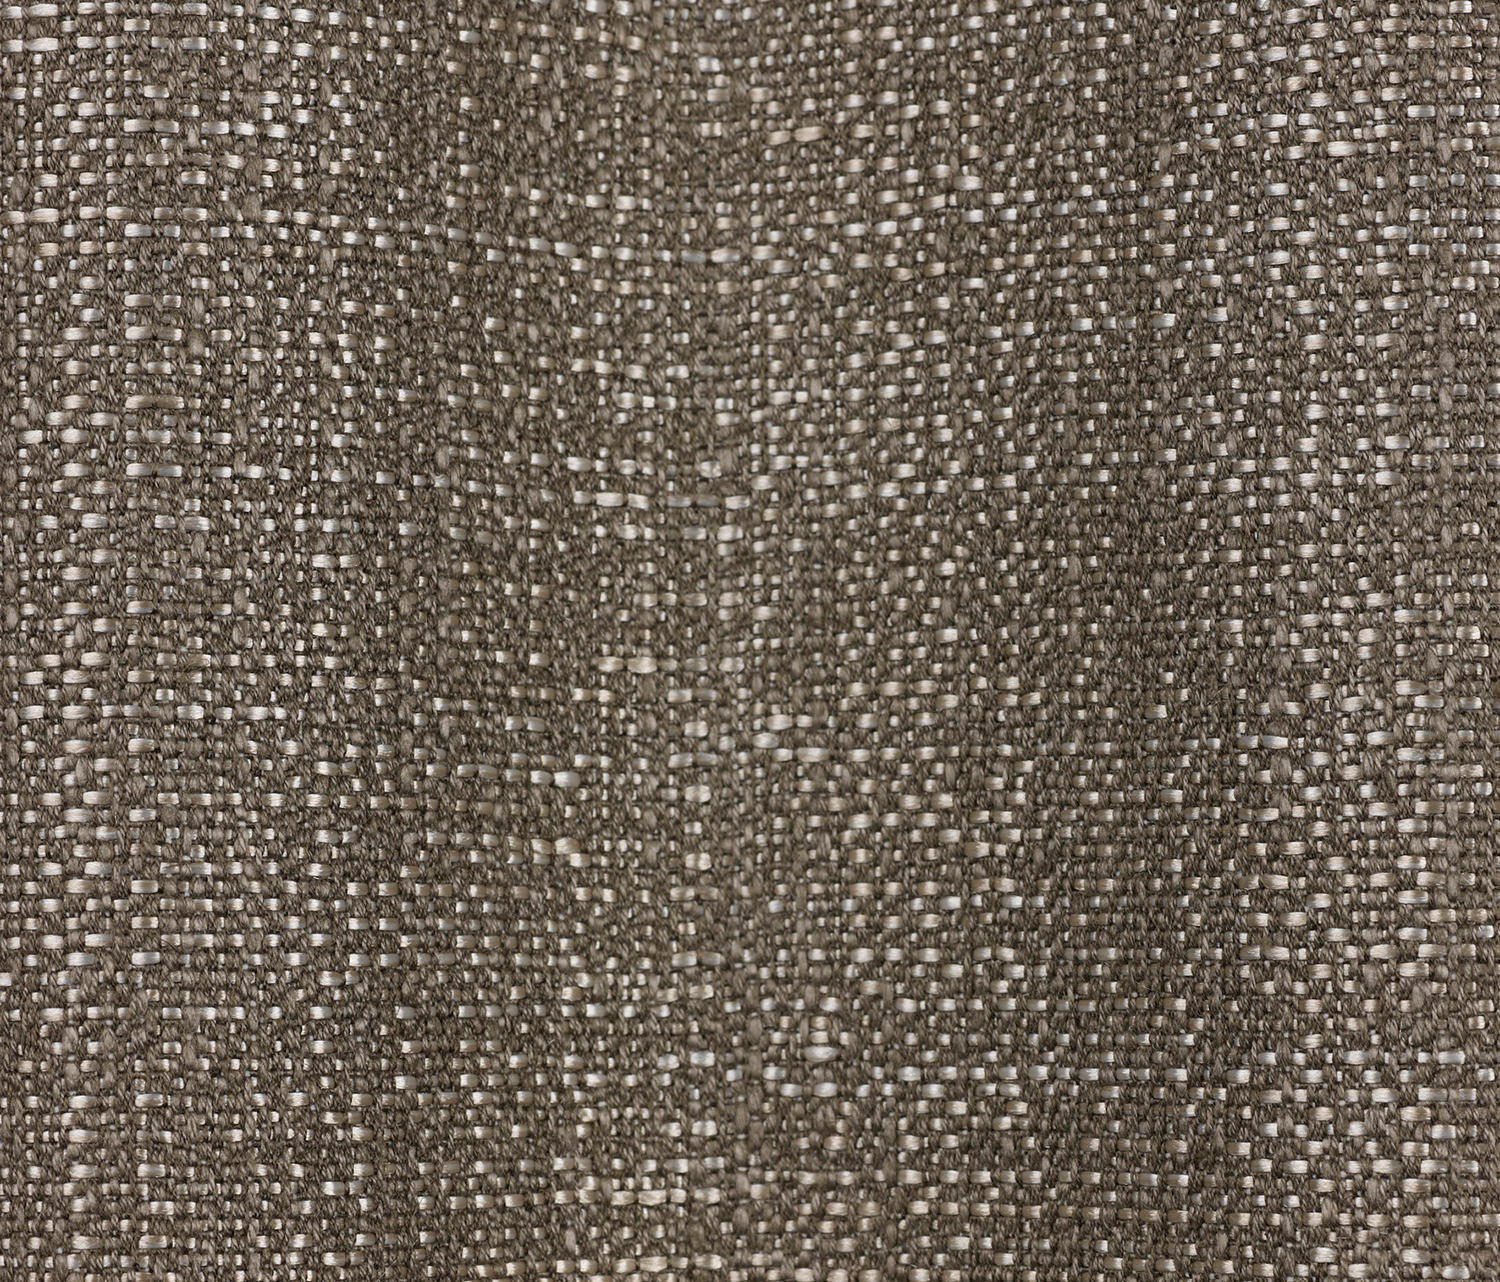 sparks col 001 curtain fabrics from dedar architonic. Black Bedroom Furniture Sets. Home Design Ideas